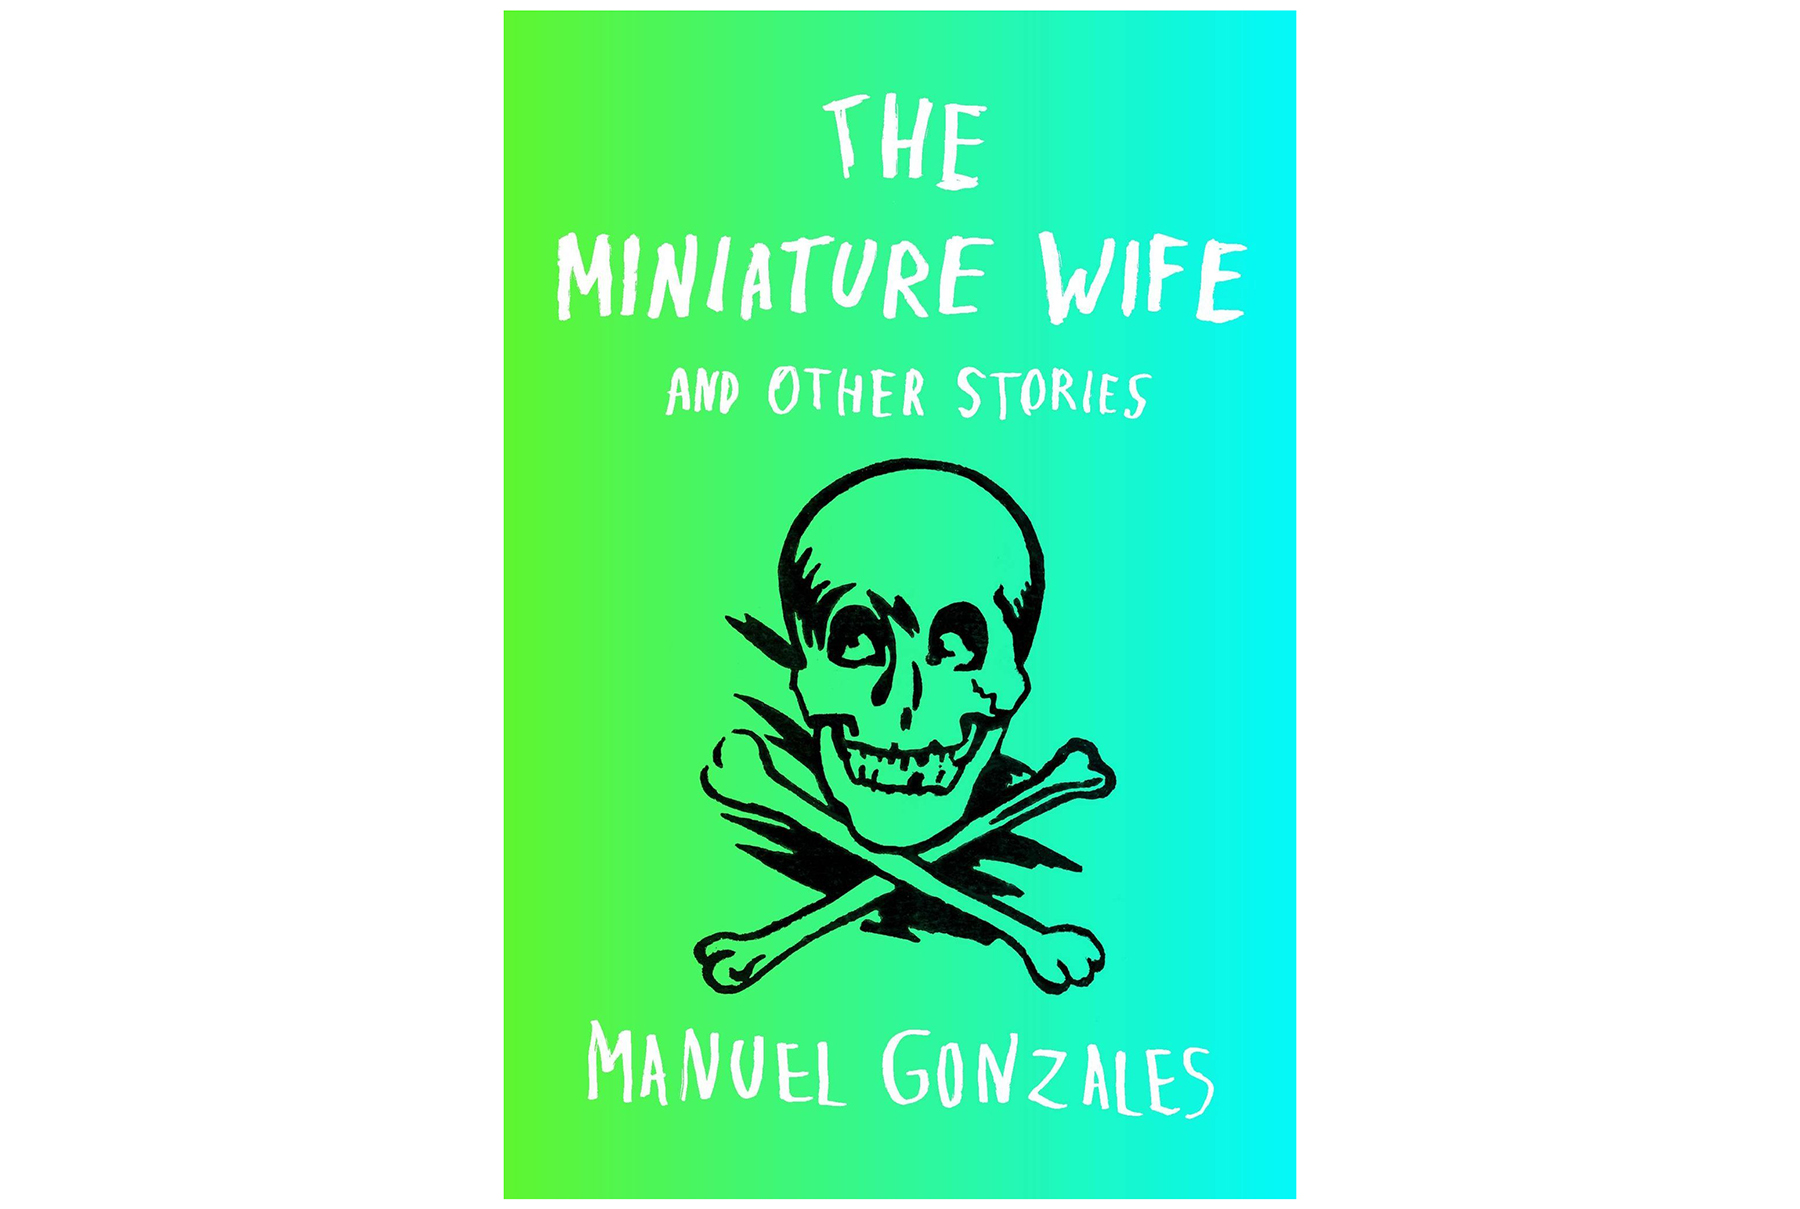 The Miniature Wife, by Manuel Gonzales